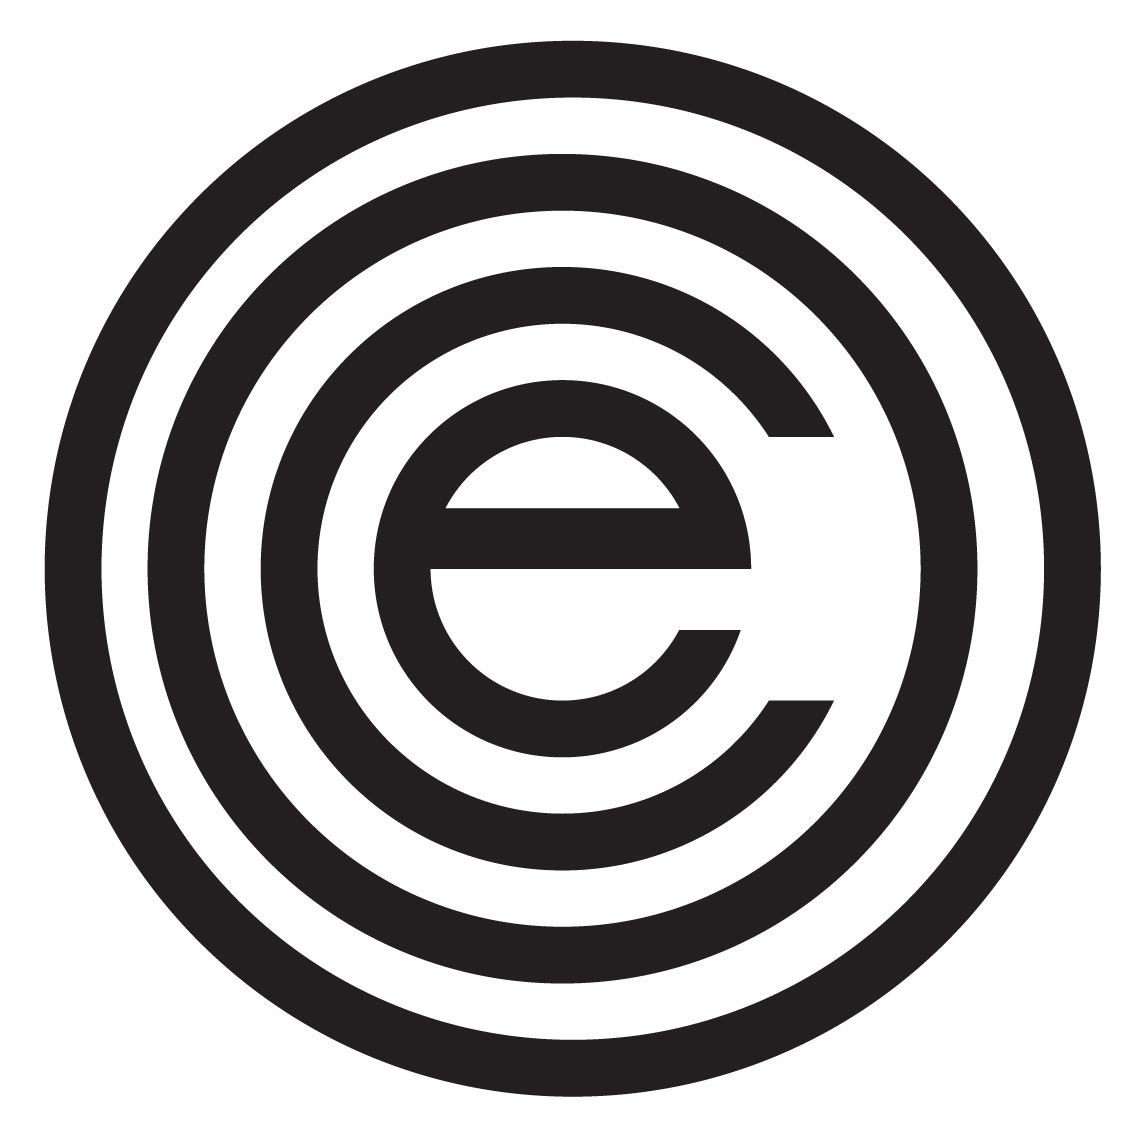 Concentric-Bag-logo.jpg